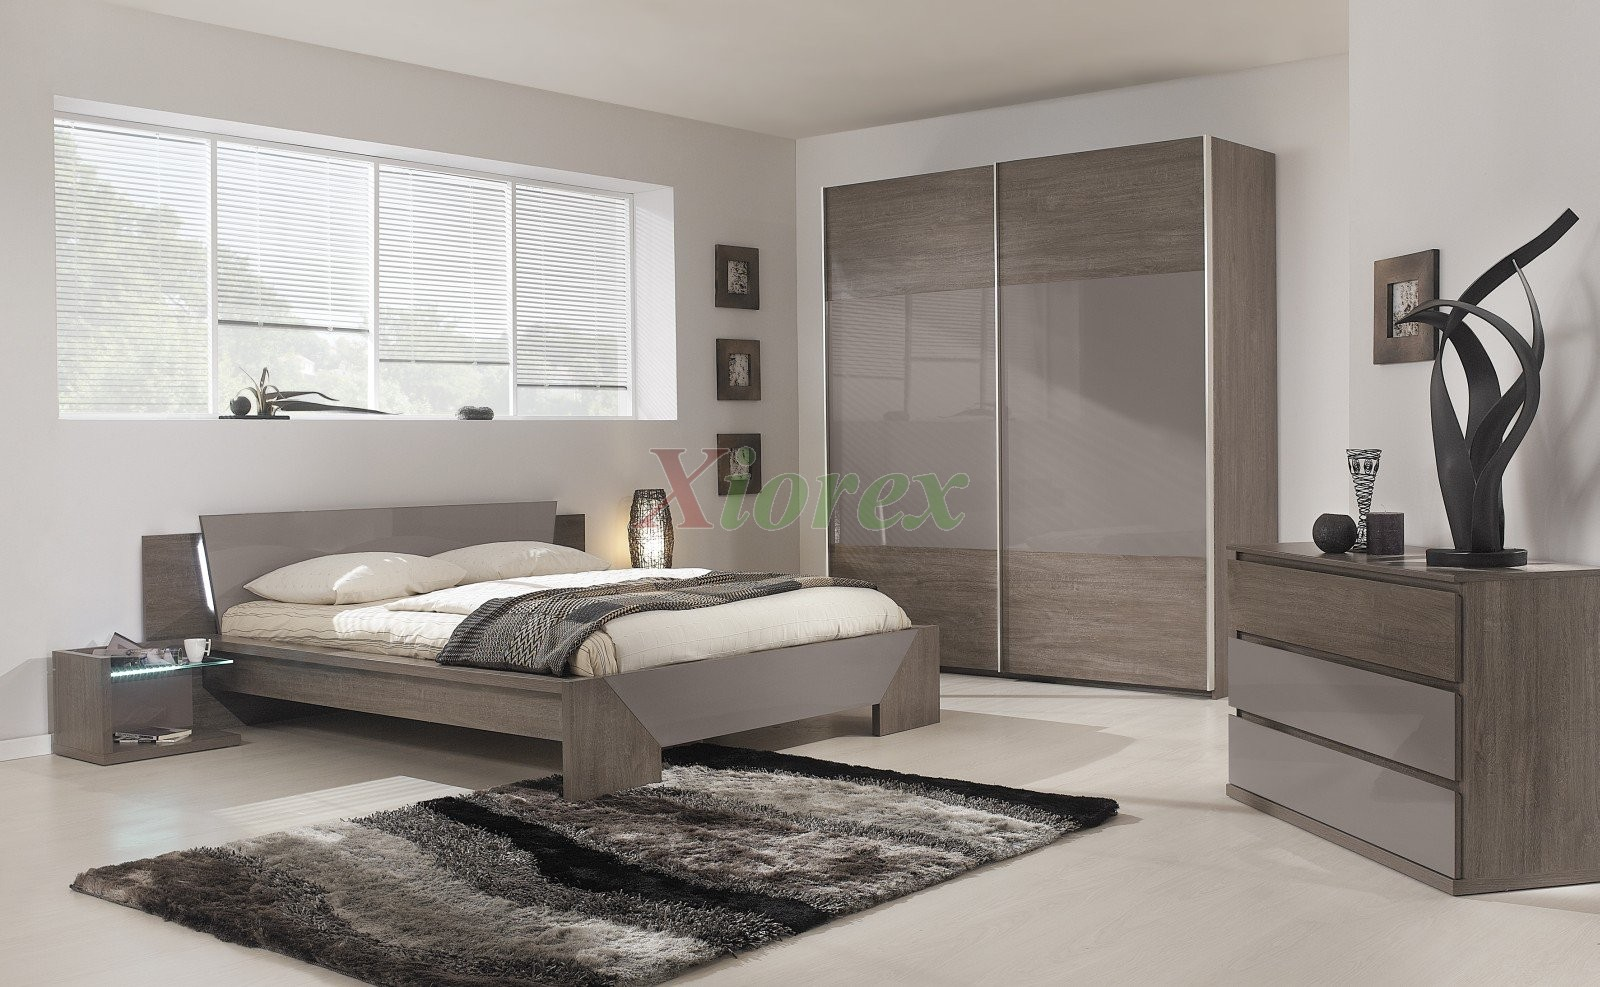 Remarkable Grey Modern Bedroom Furniture Sets 1600 x 987 · 339 kB · jpeg